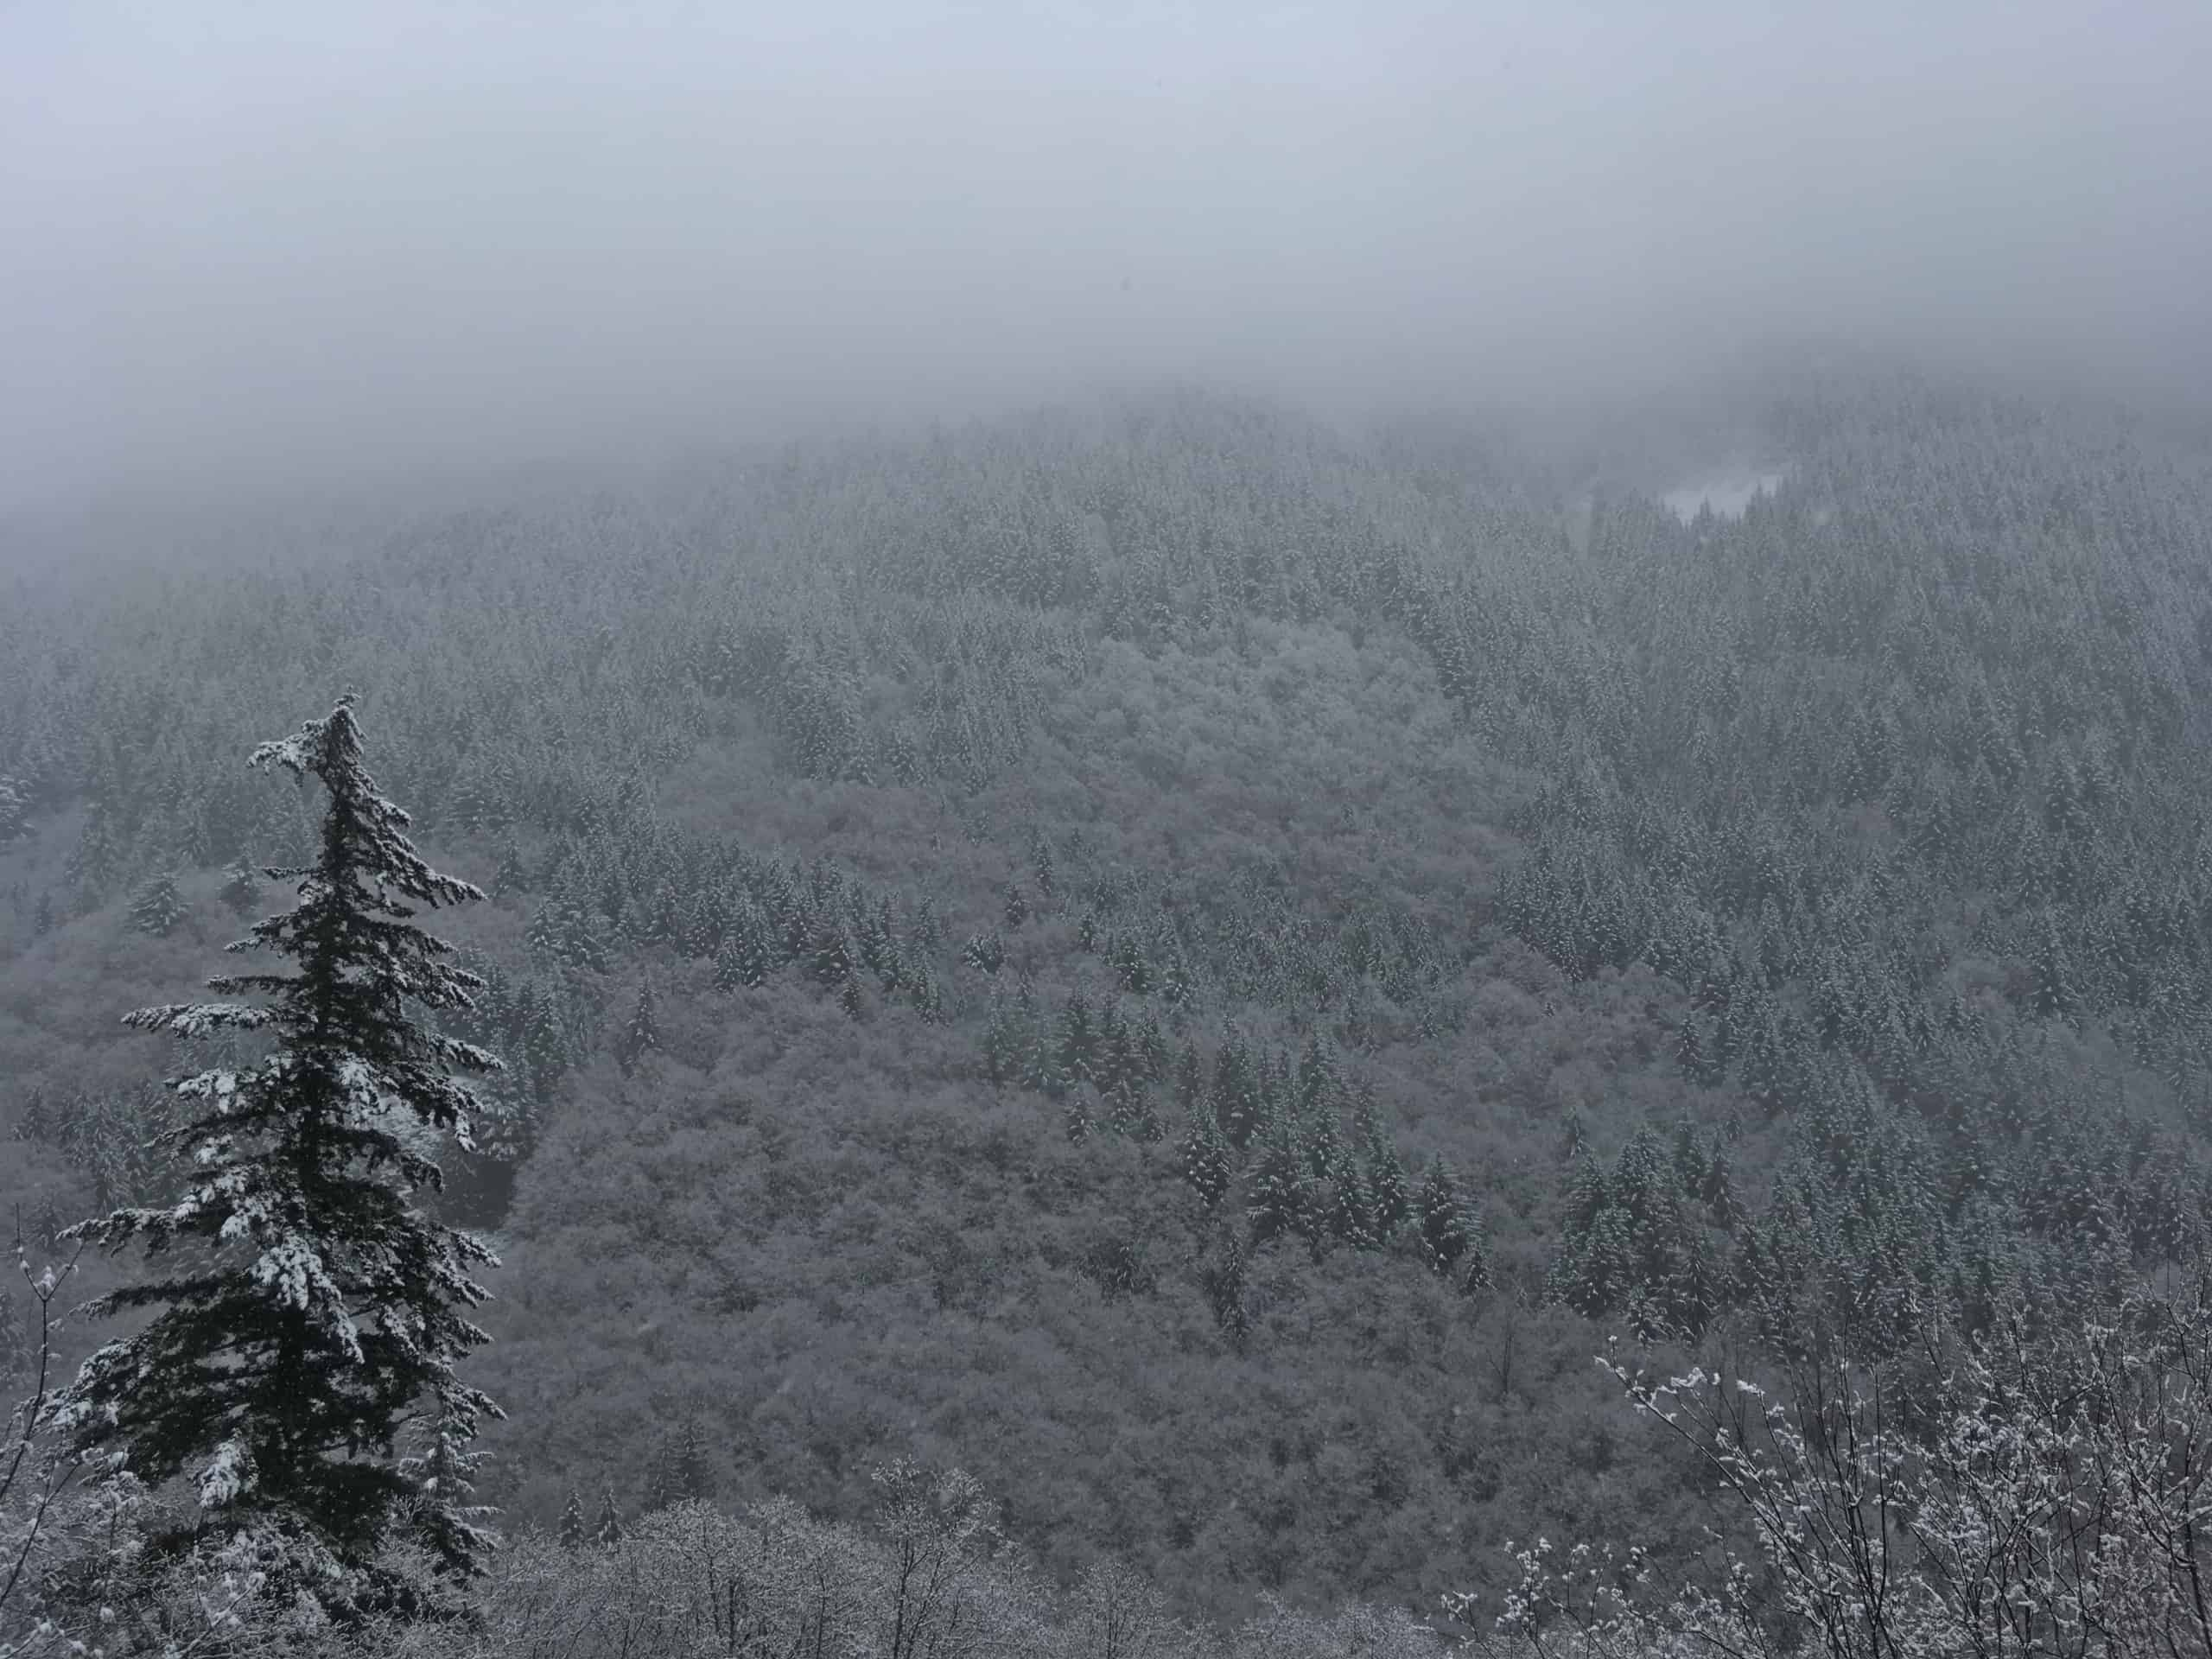 Trees coated in snow and fog on a hillside